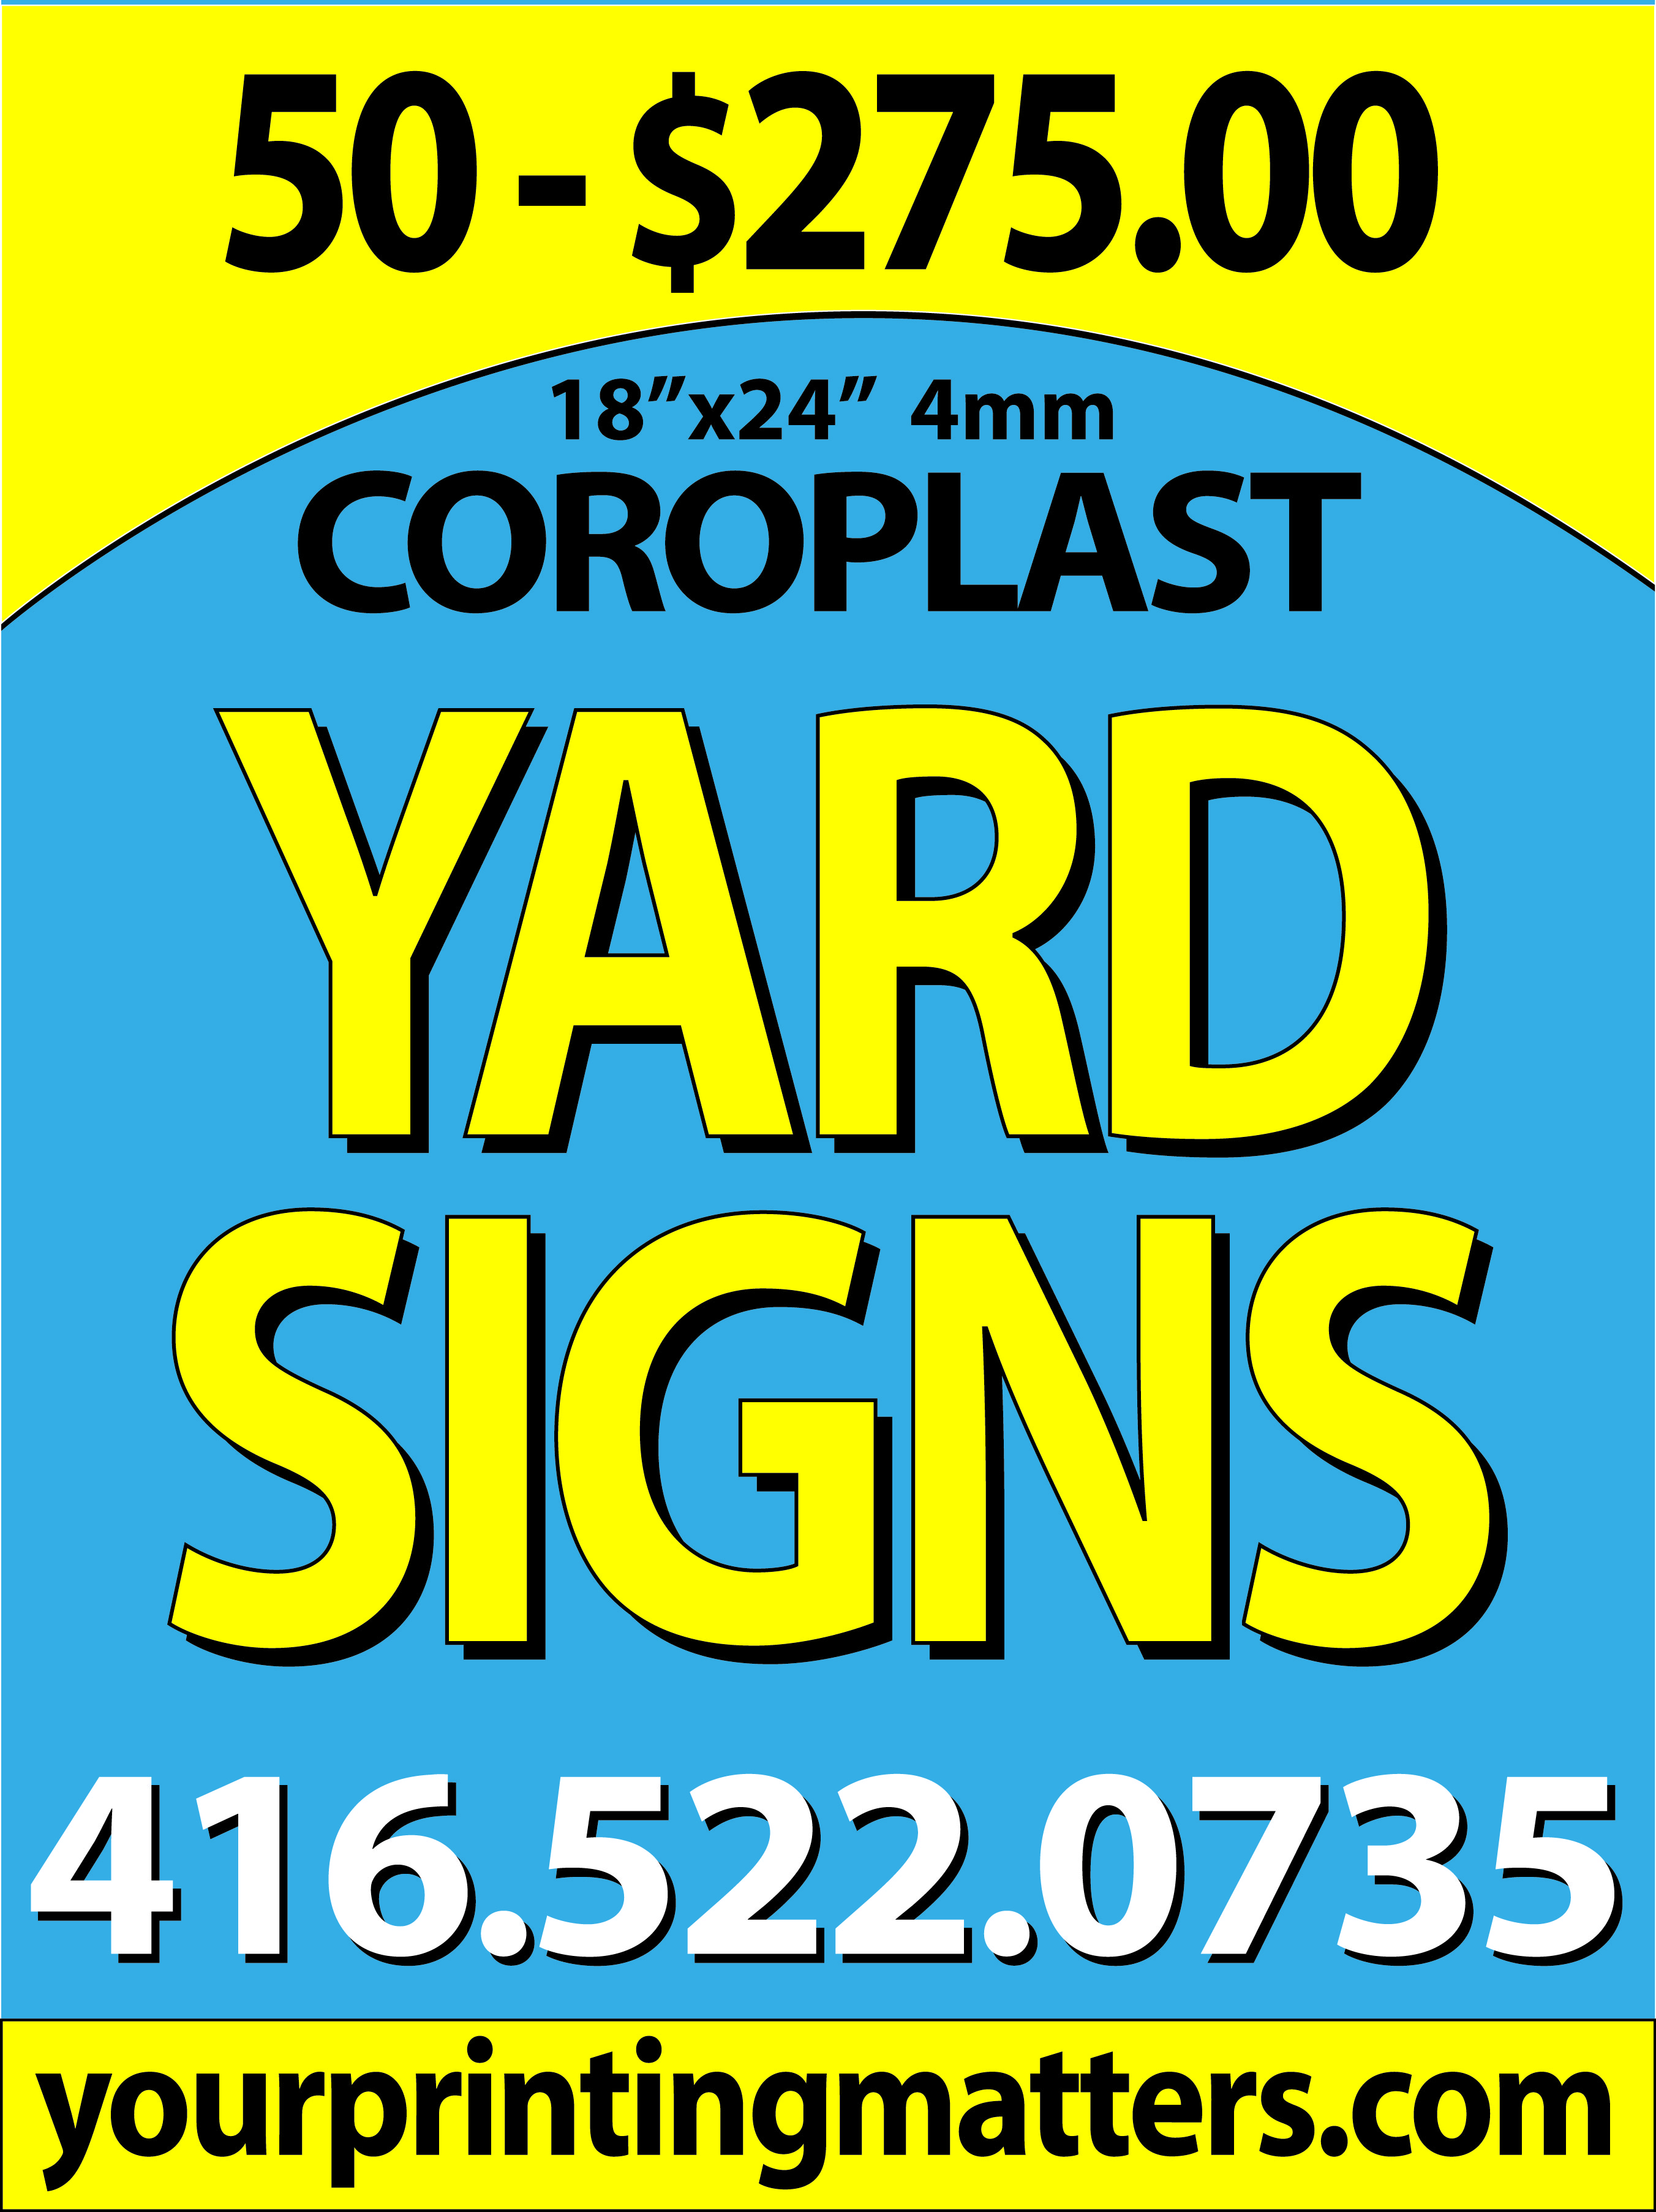 Yard Signs -1 sided